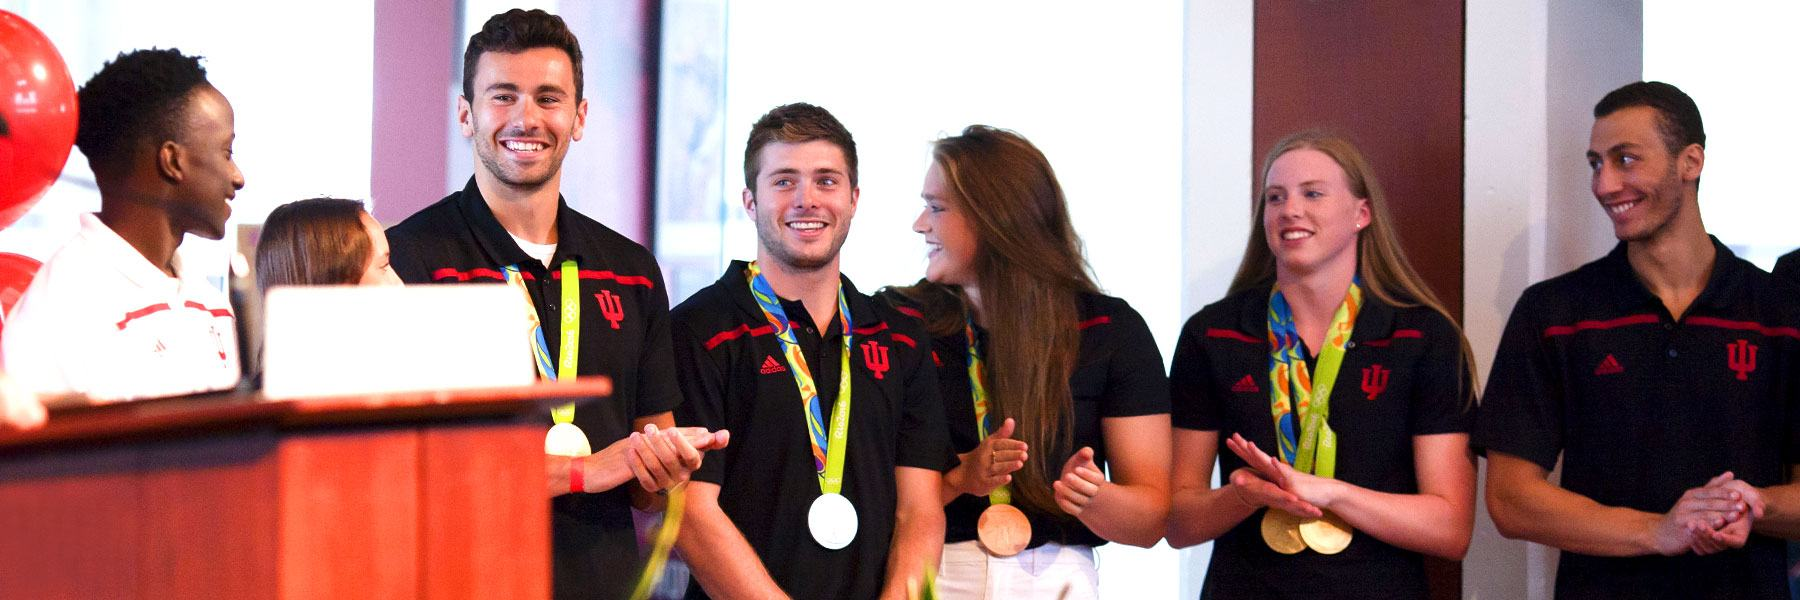 Student Olympic athletes at a reception